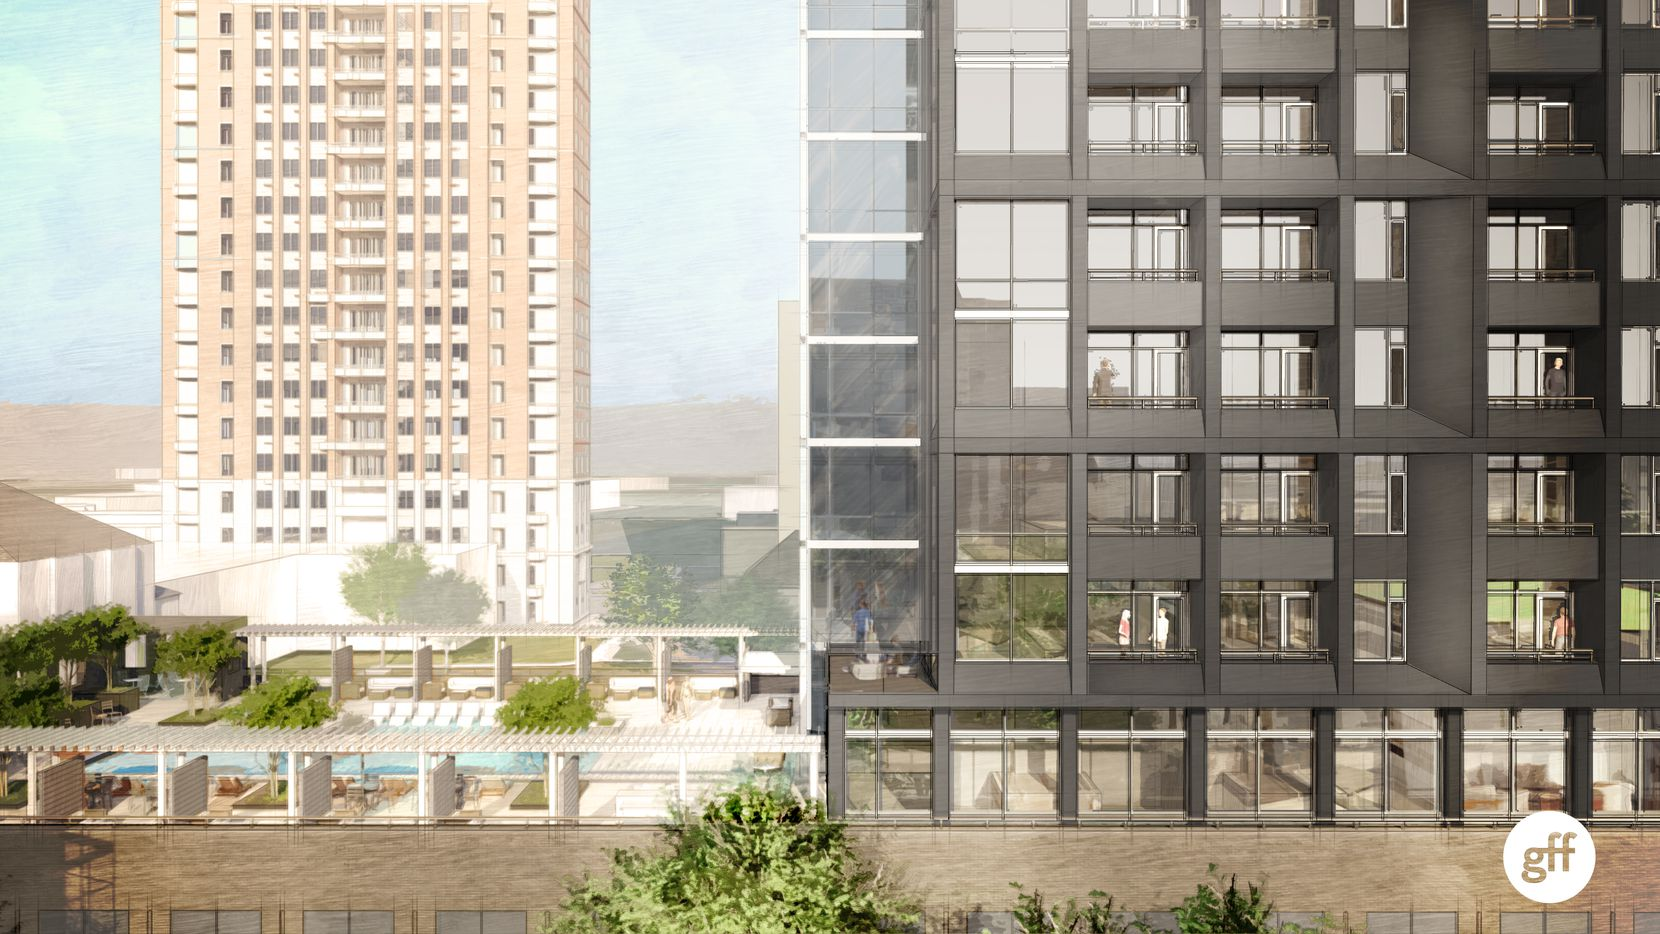 The residential tower will have a third-floor pool deck.